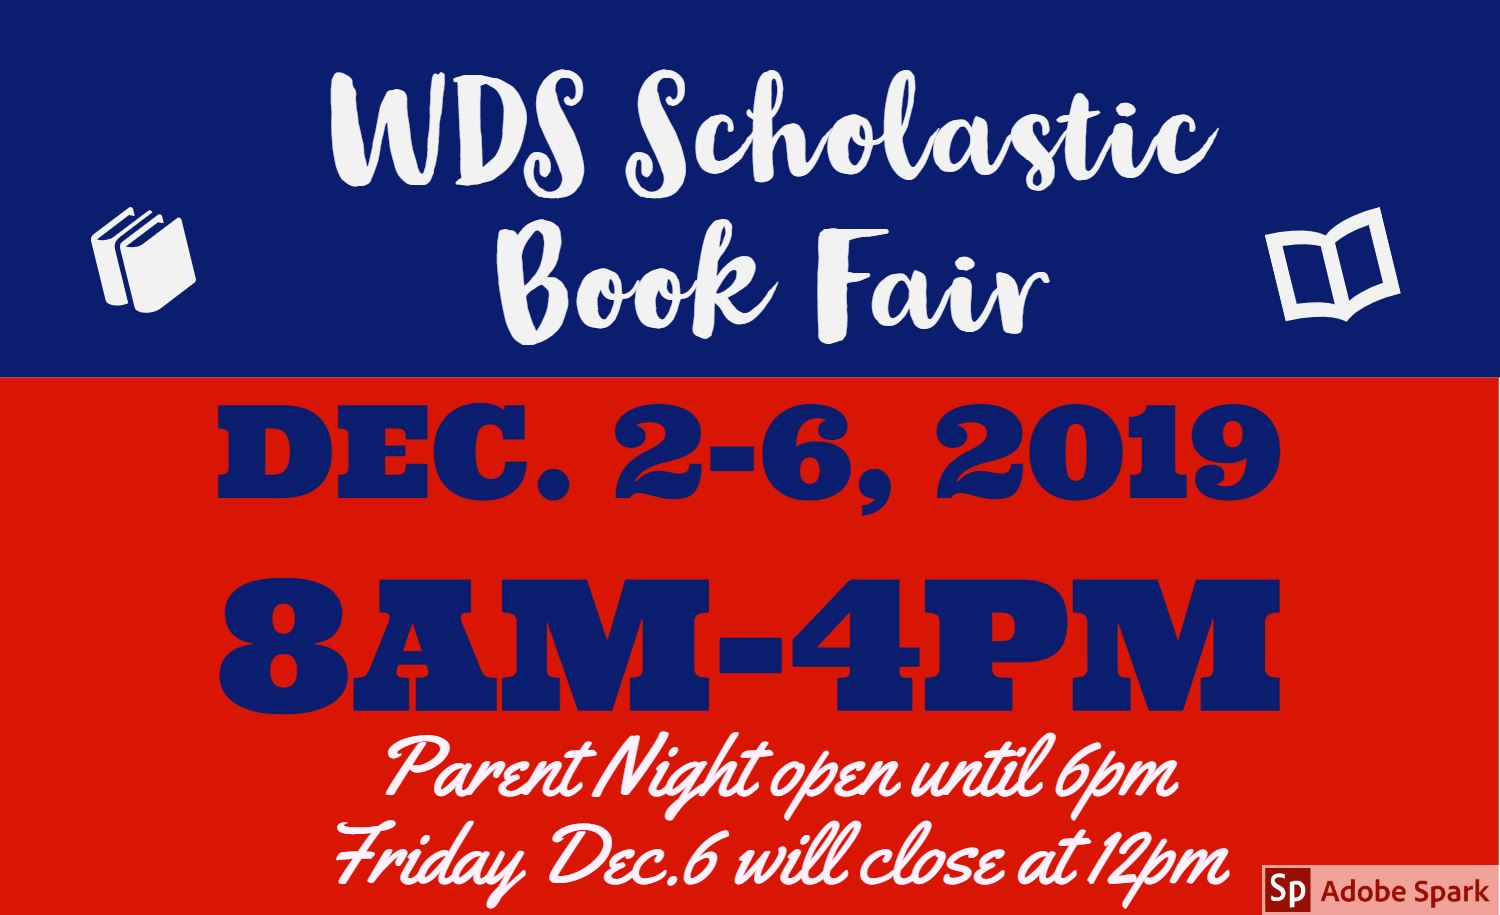 Image of Book Fair information